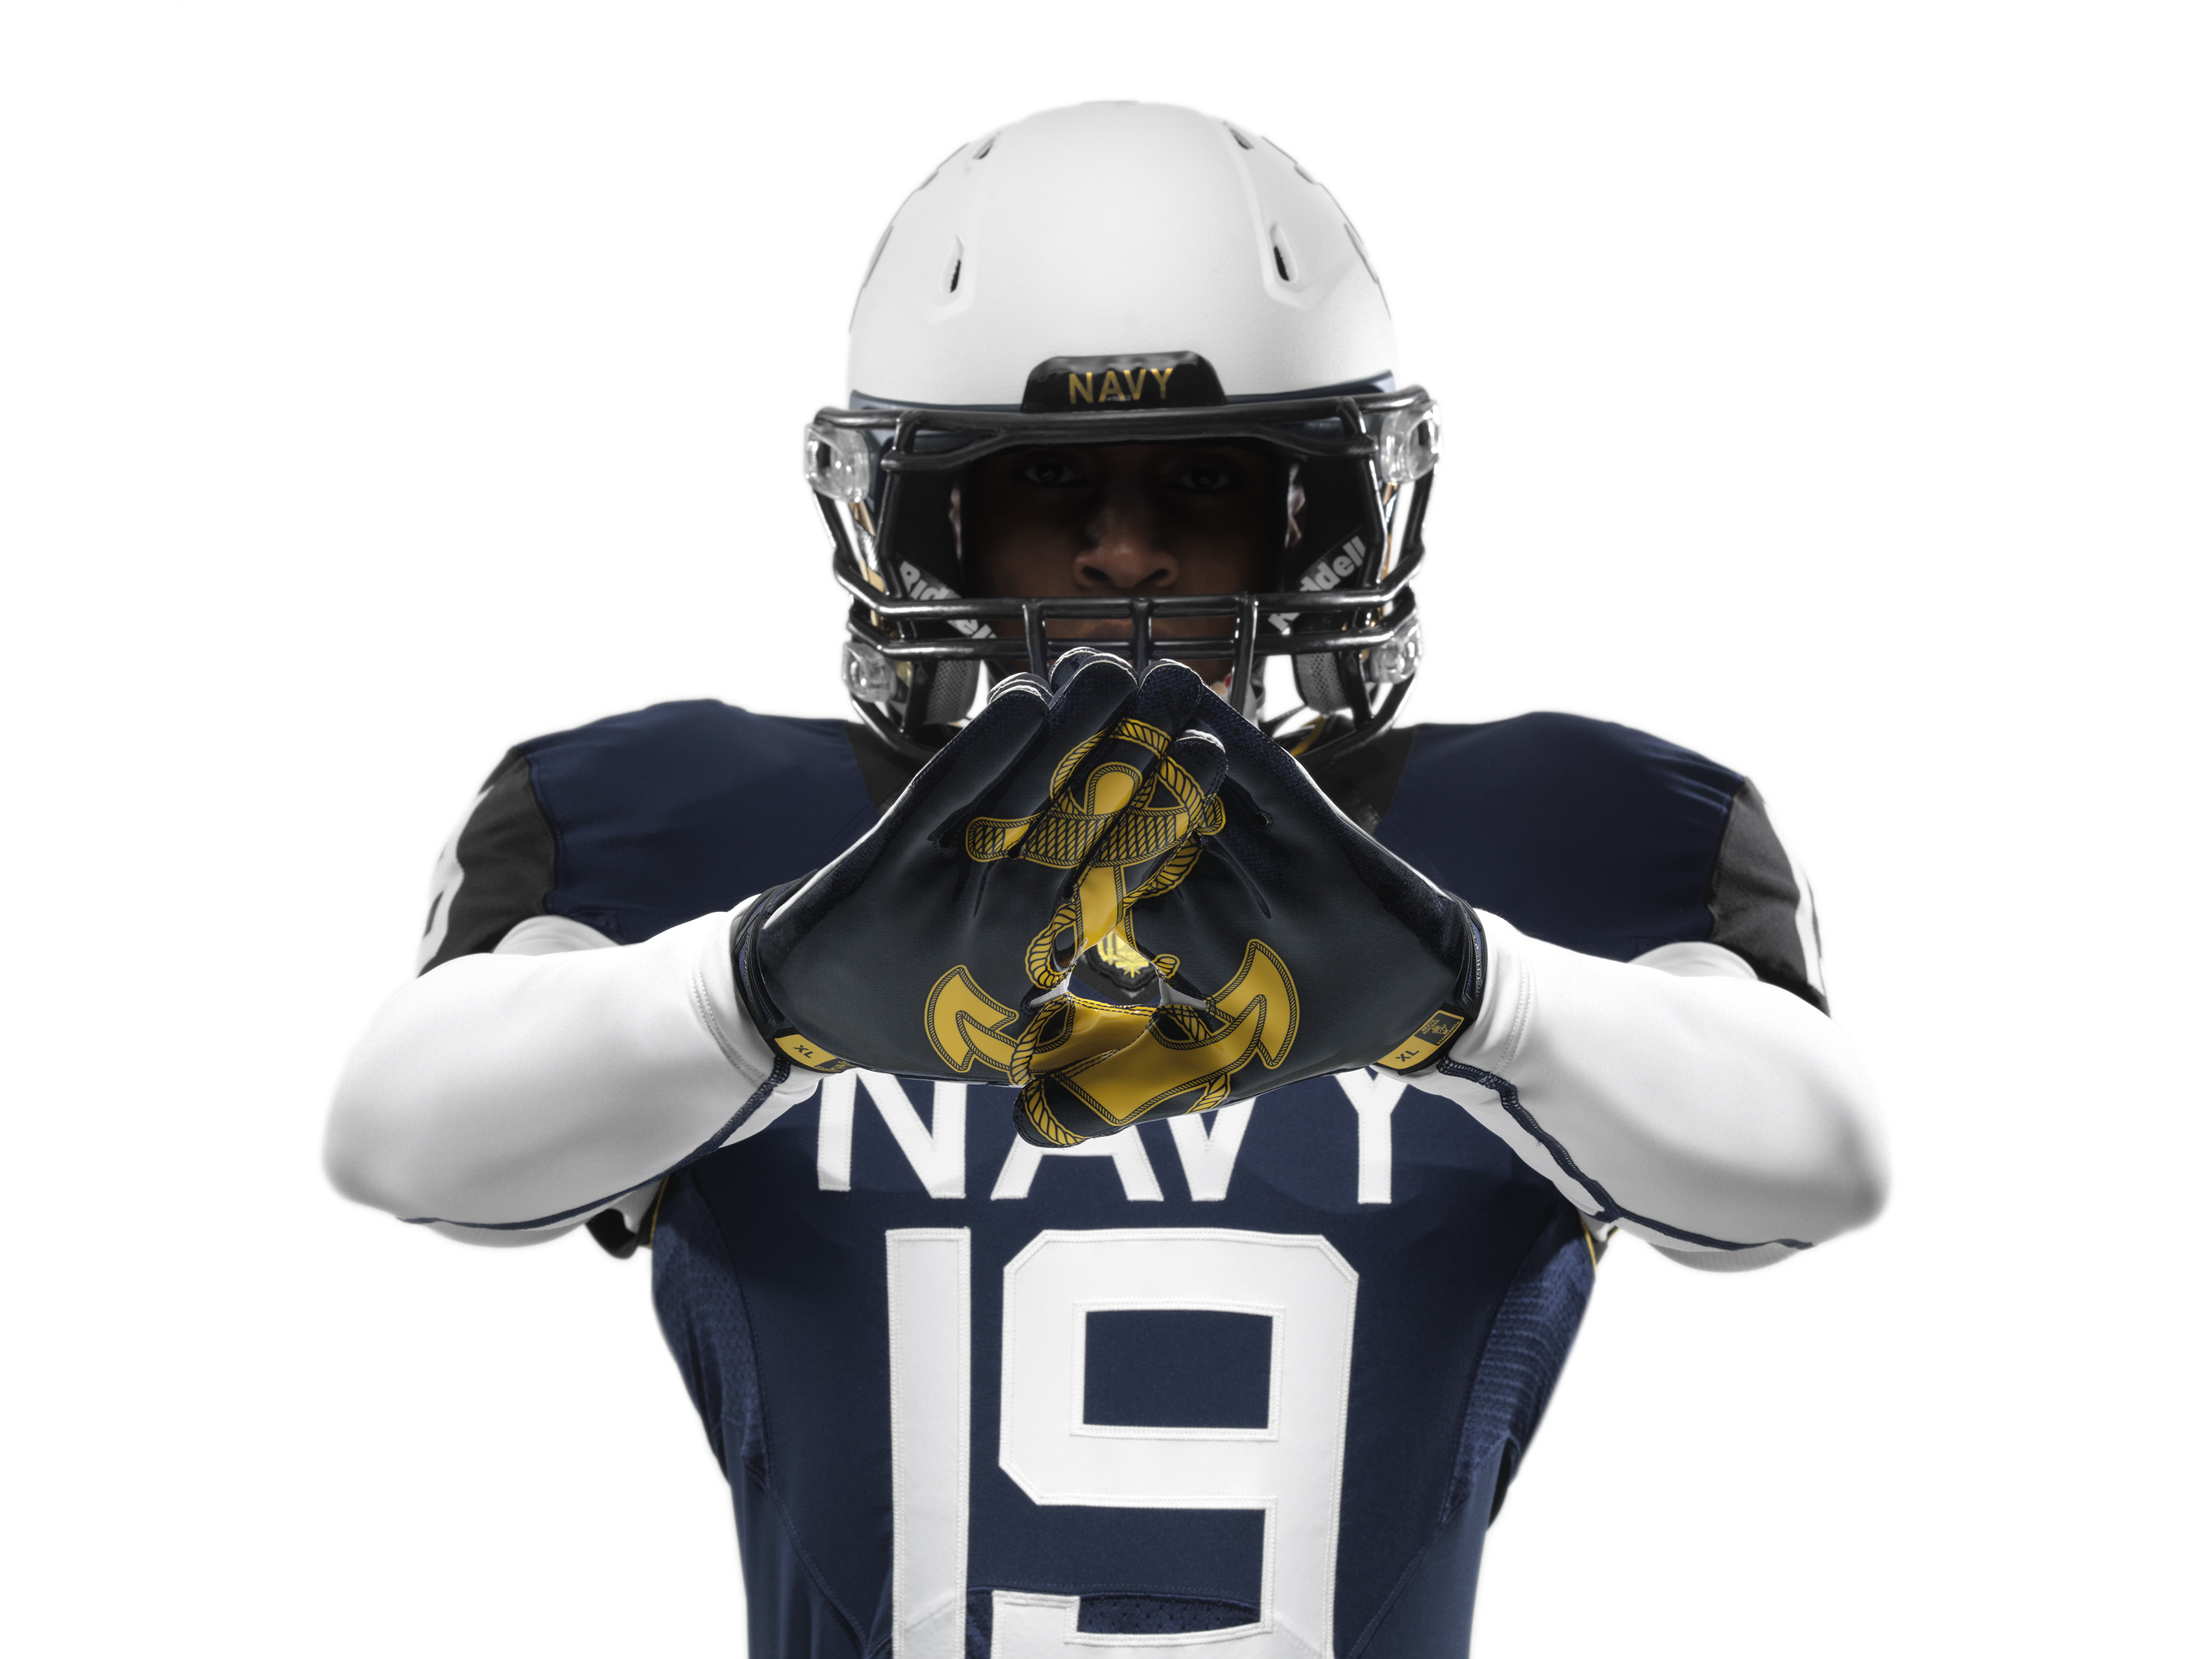 Nike debuts new uniforms for the Army-Navy game